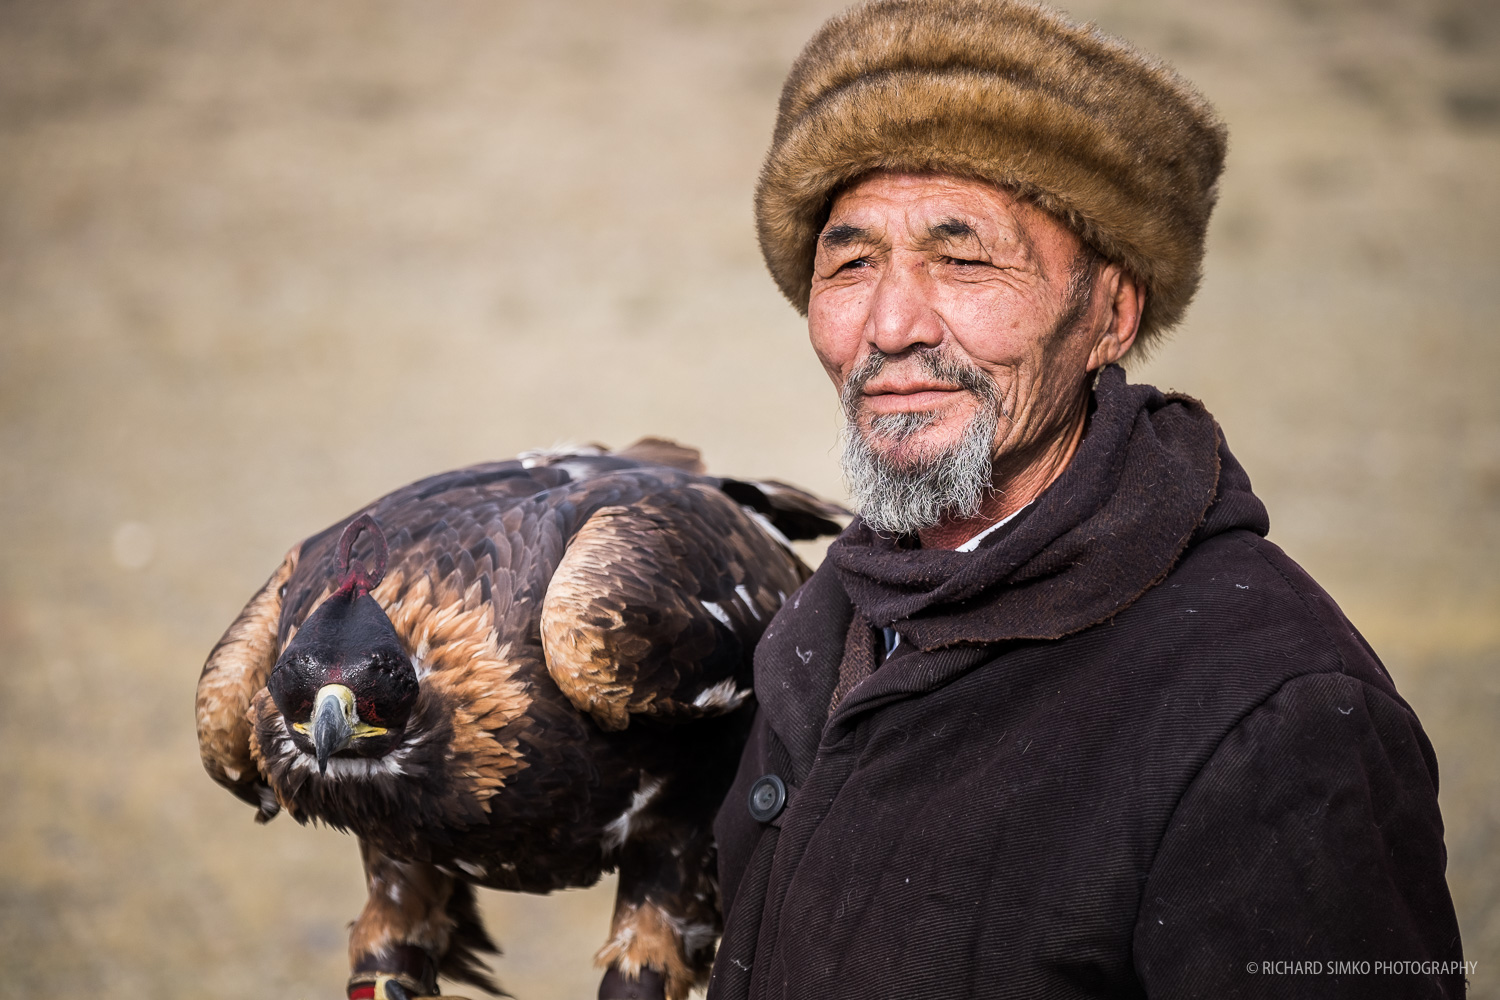 This eagle hunter's outfit was different from others